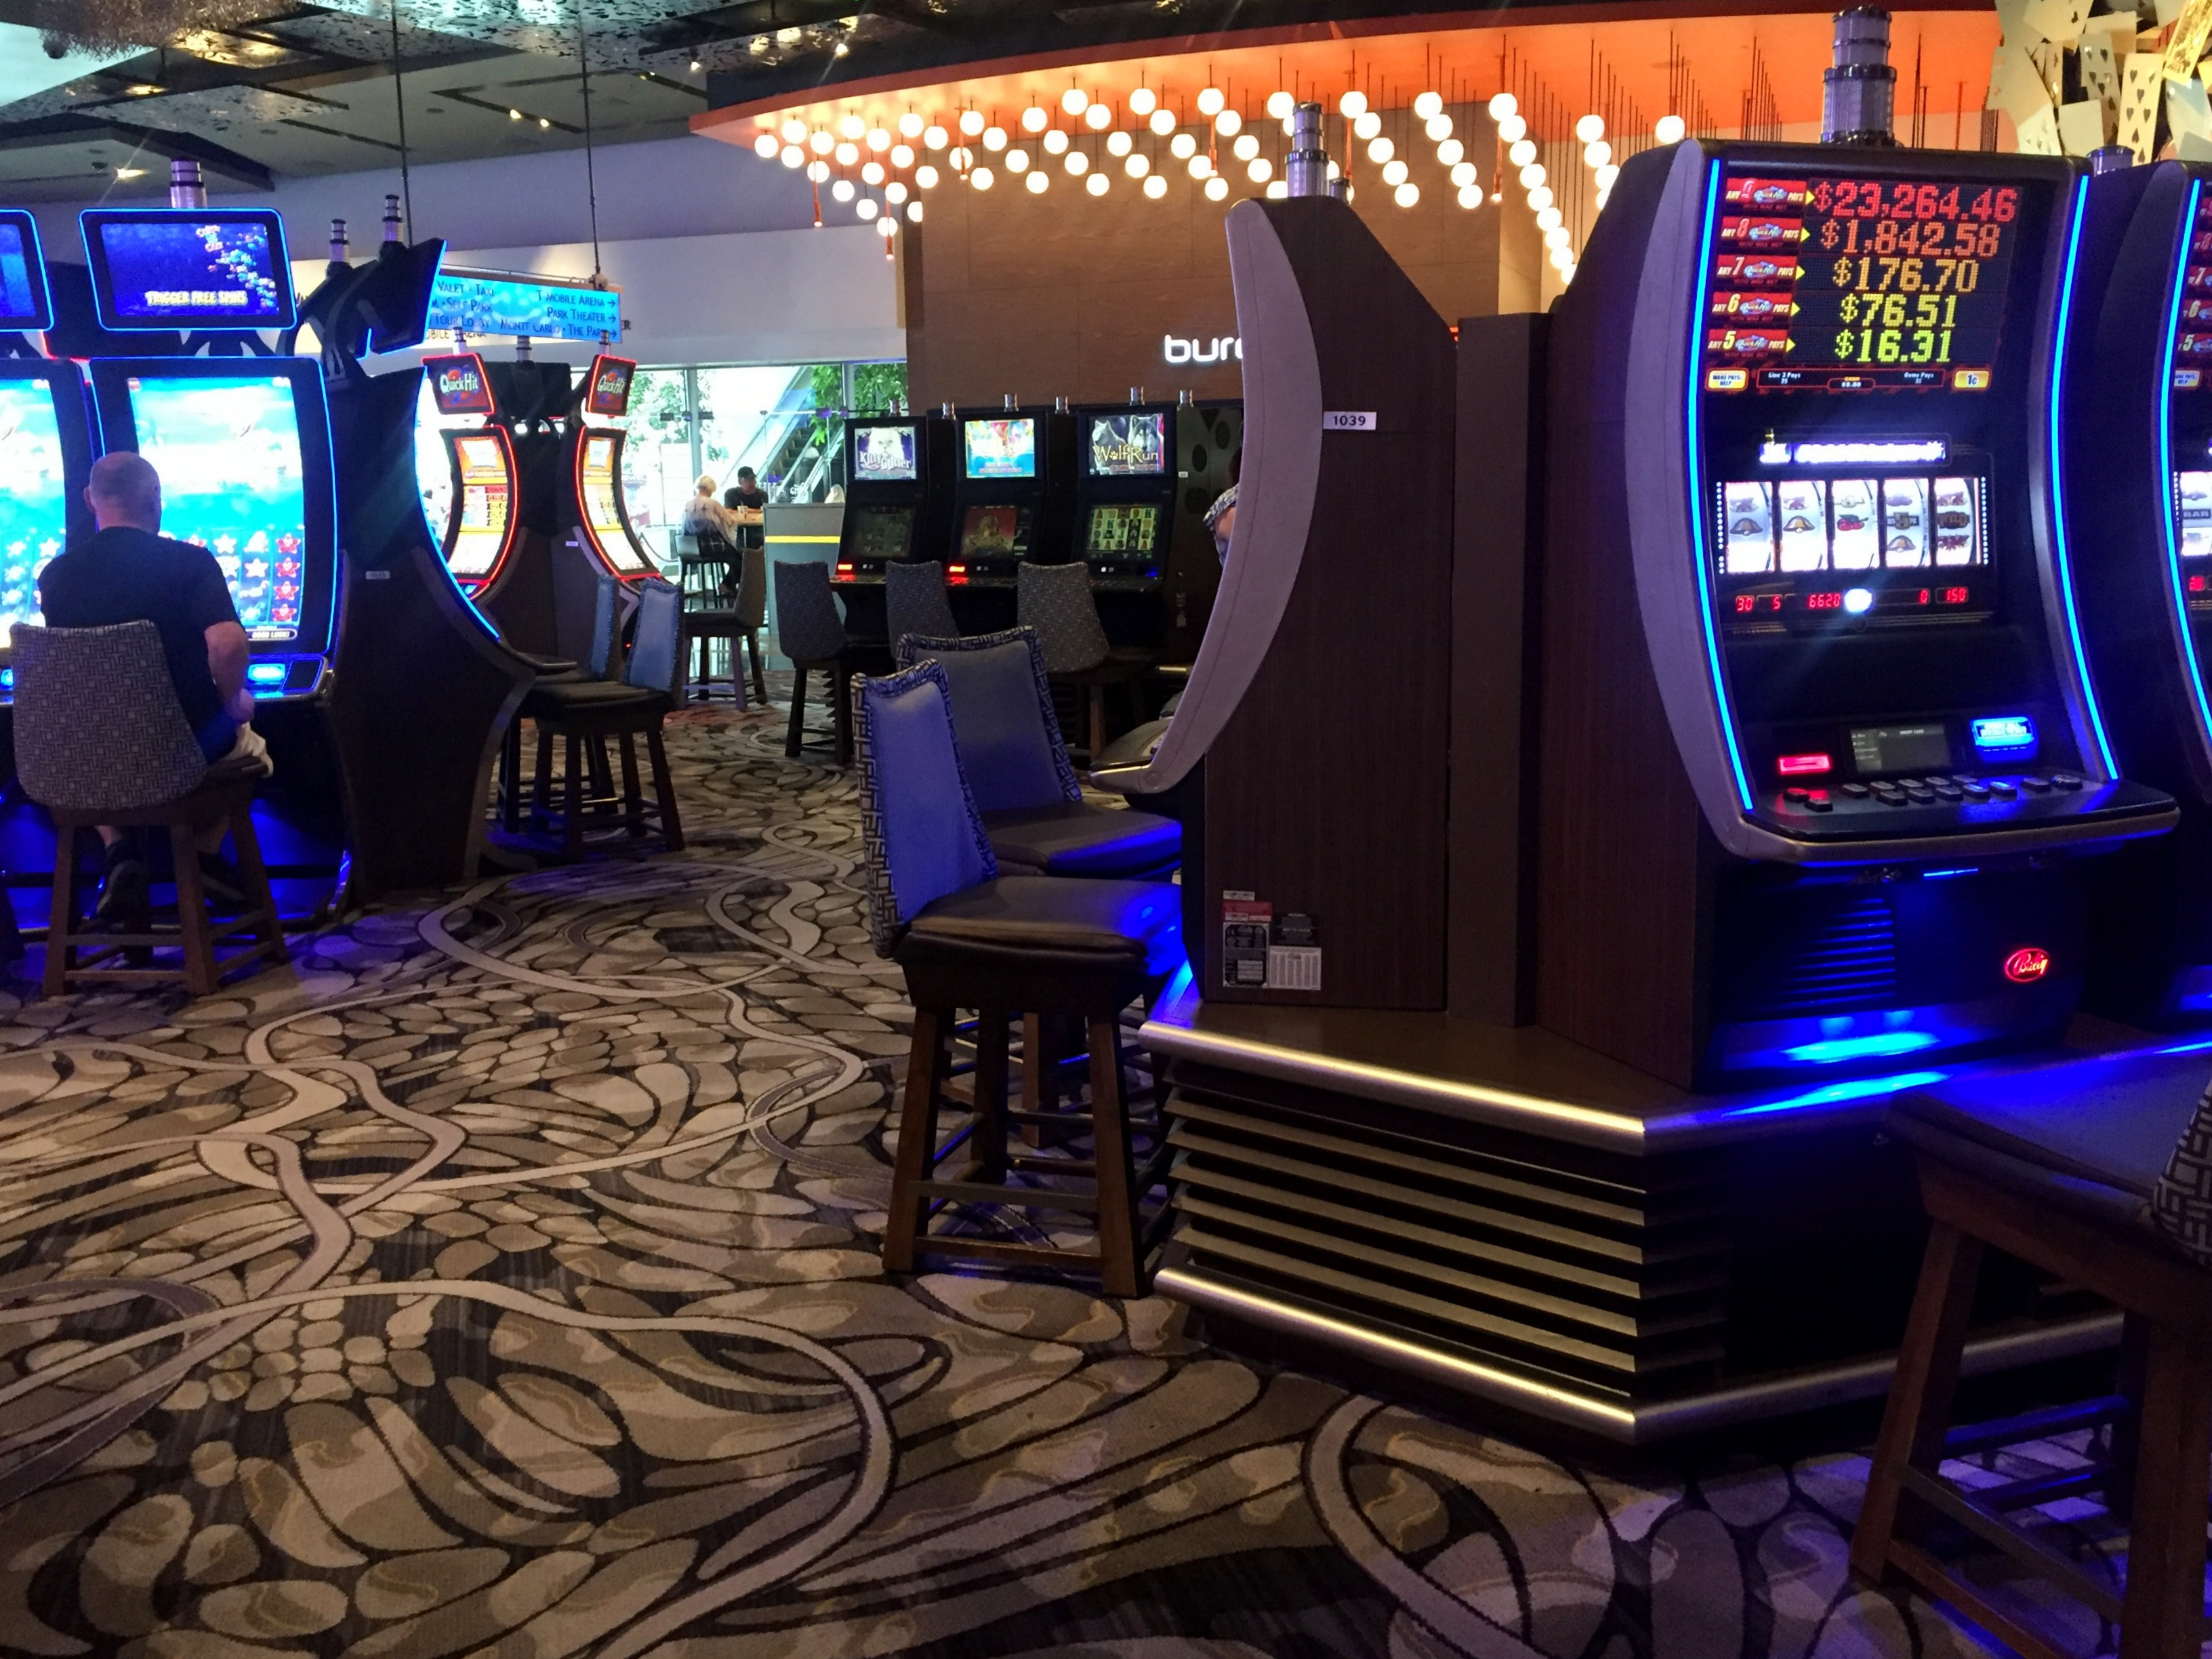 Slot machines at Aria casino double as air conditioning units.